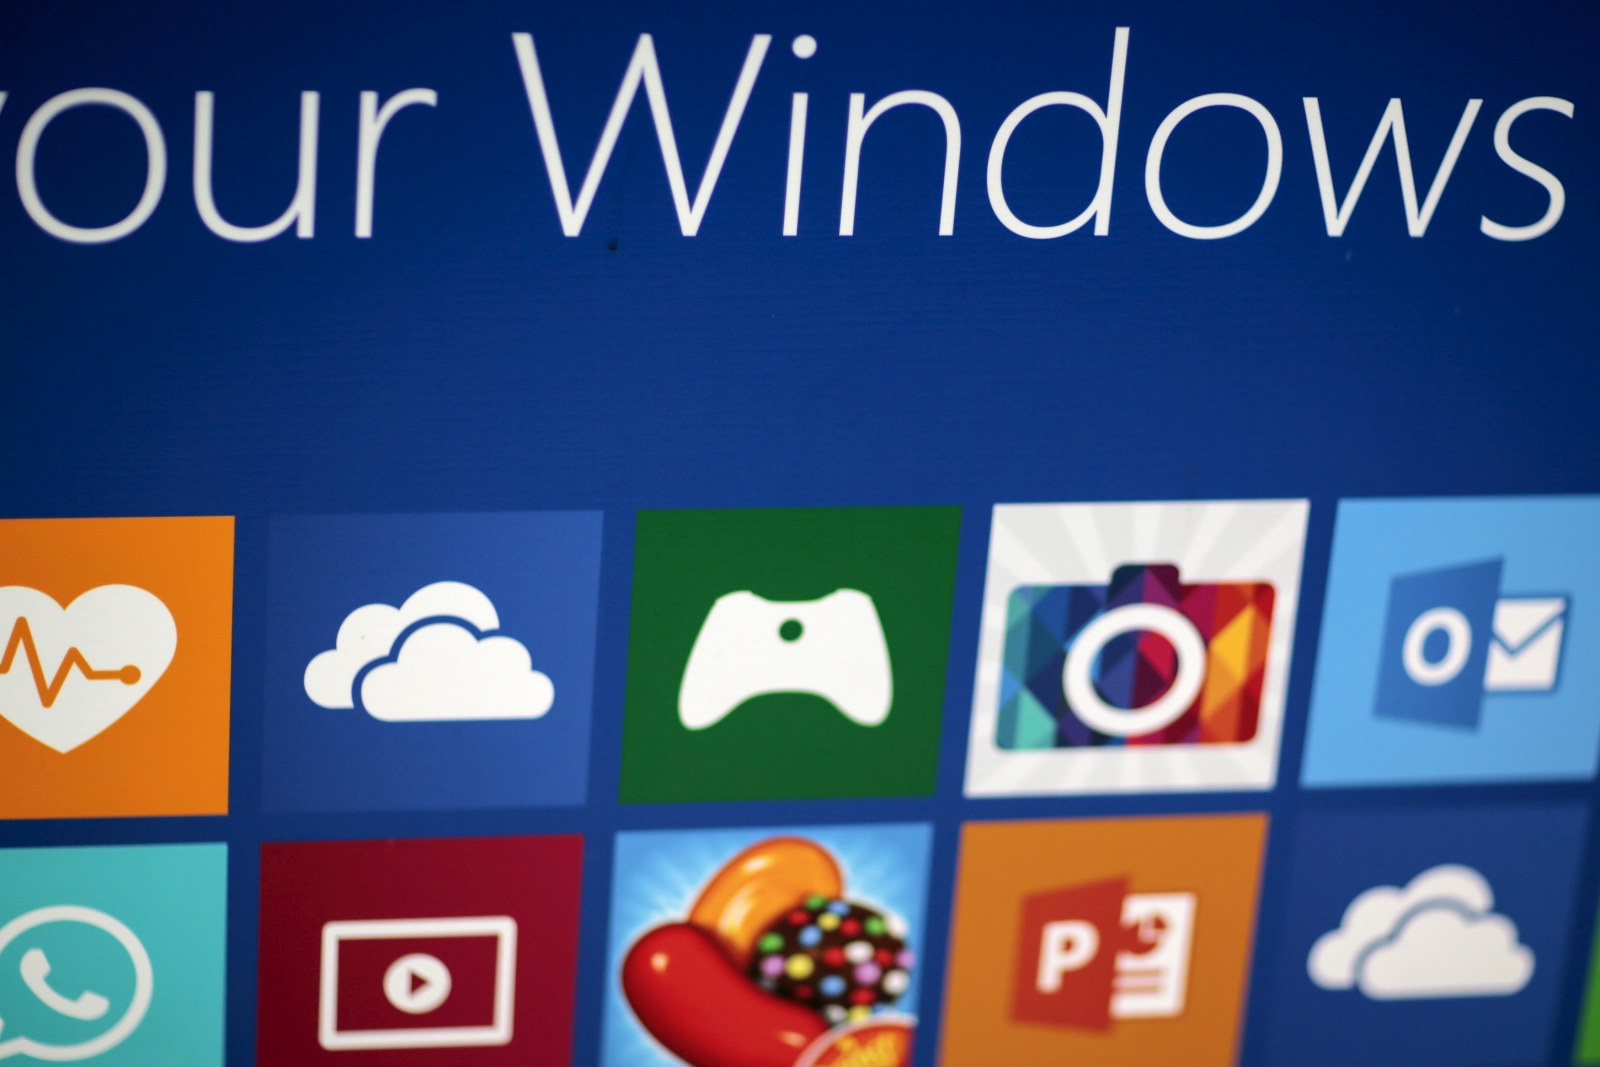 Microsoft fixes windows 10 store issues